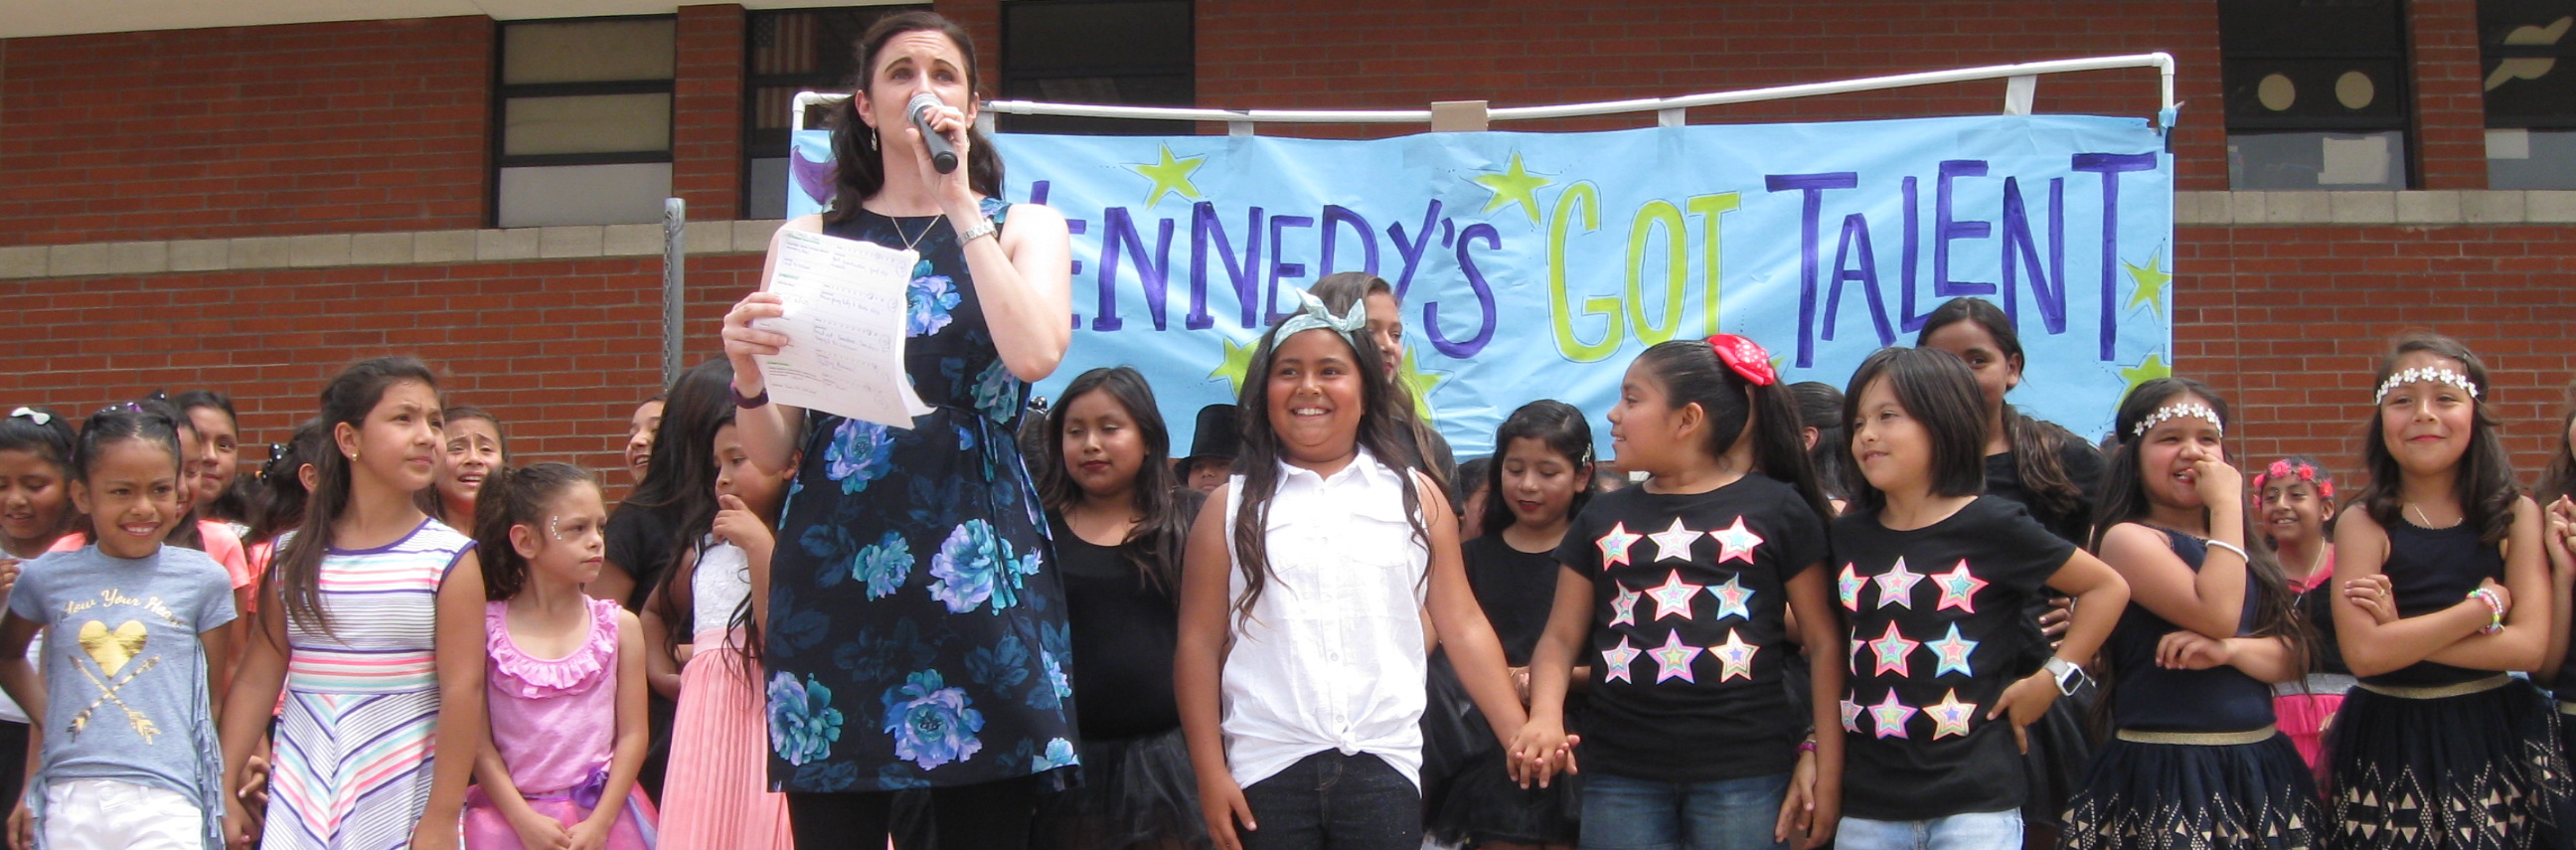 kennedy elementary school home page